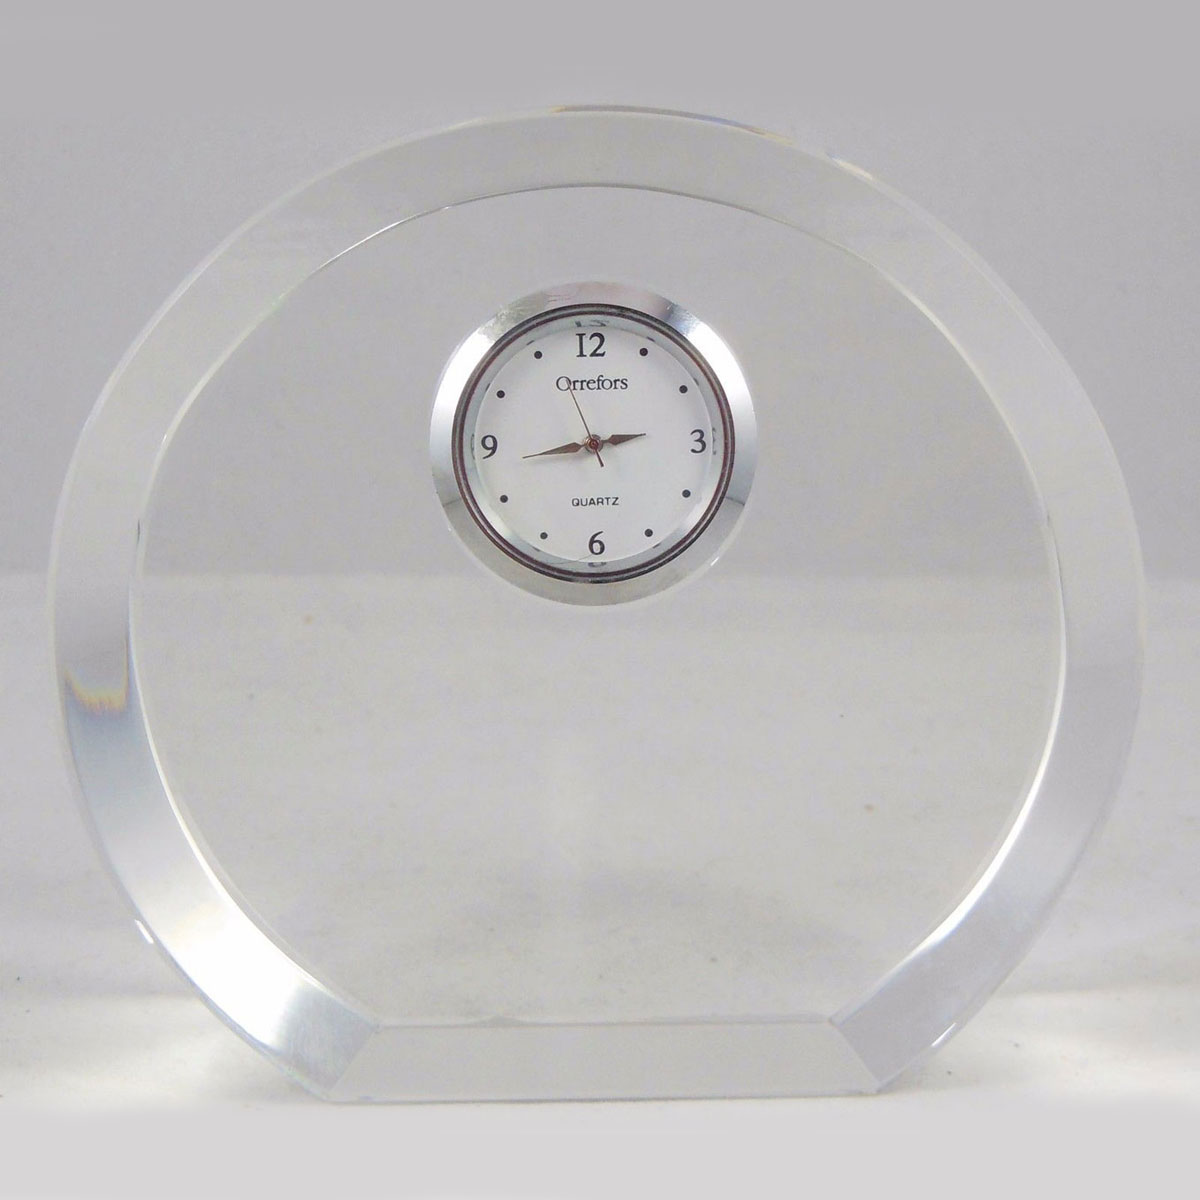 Orrefors Crystal, Vision Clear Round Desk Crystal Clock